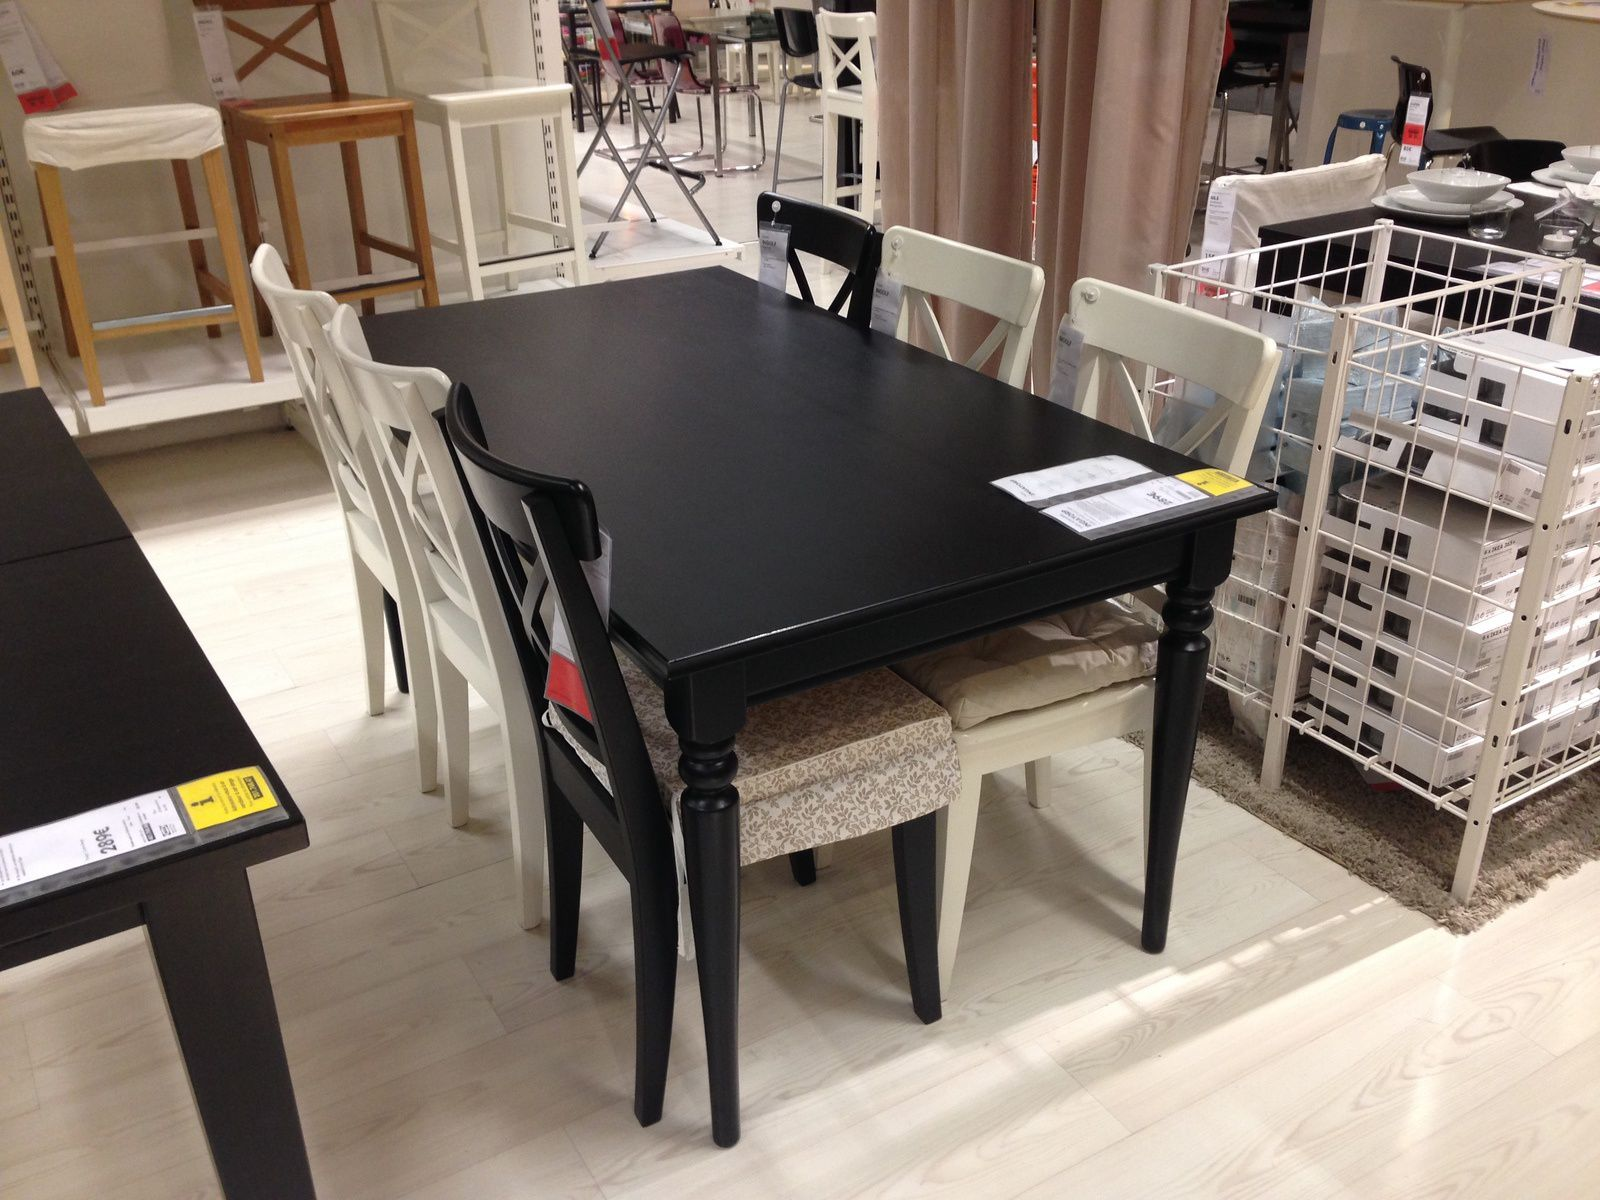 ob_e22ab6_table-ikea-ingatorp-noir Incroyable De Table Basse Lack Ikea